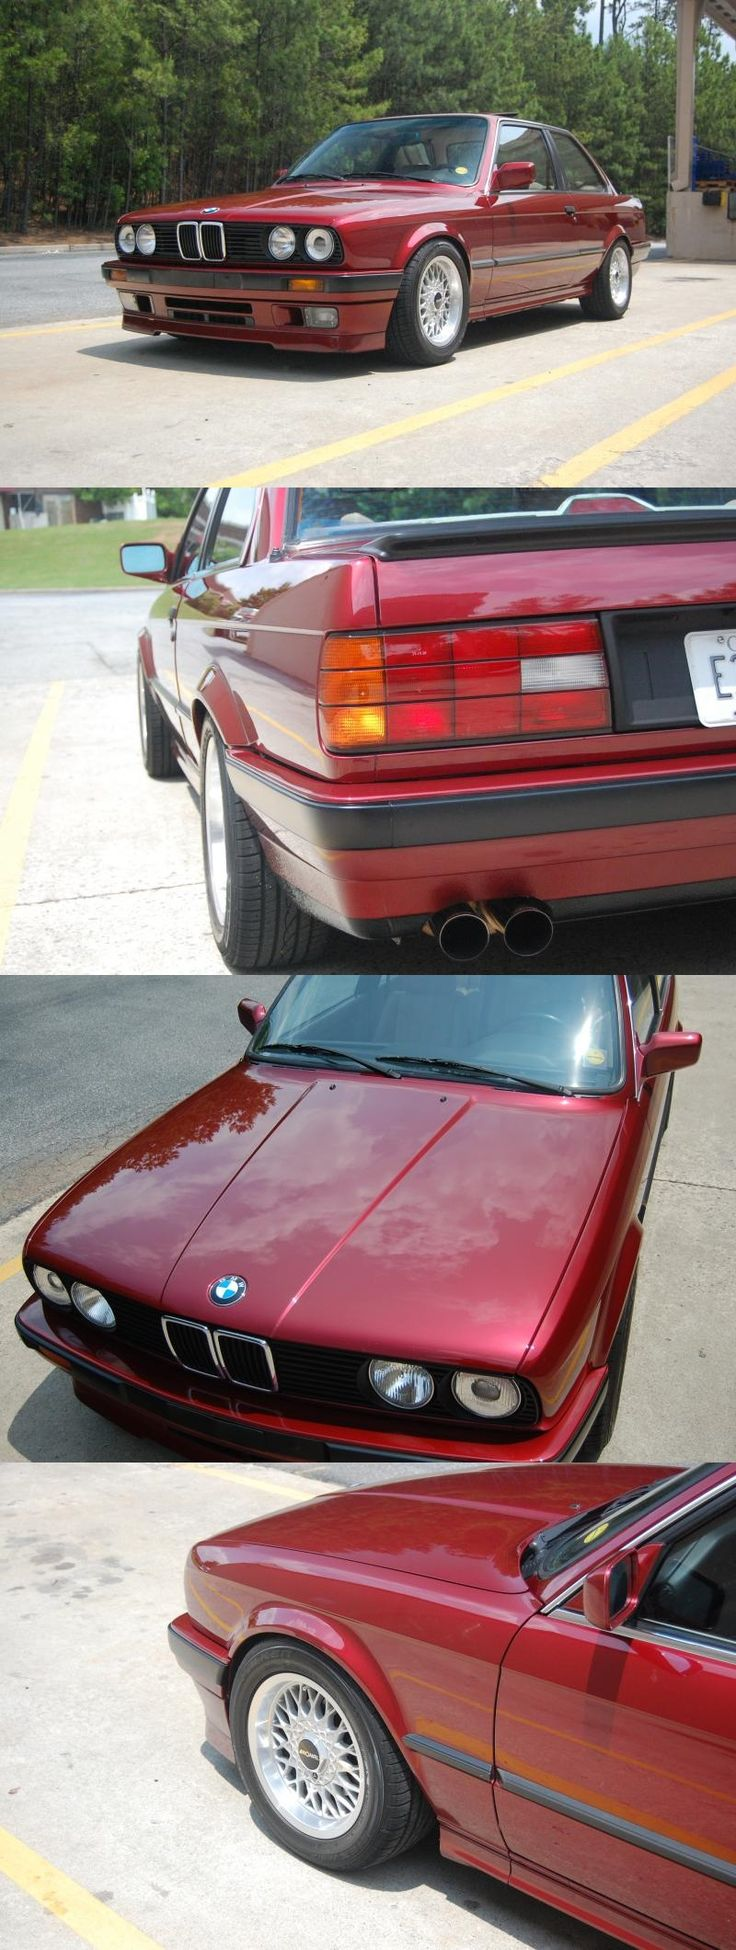 1991 BMW 325i - perfection